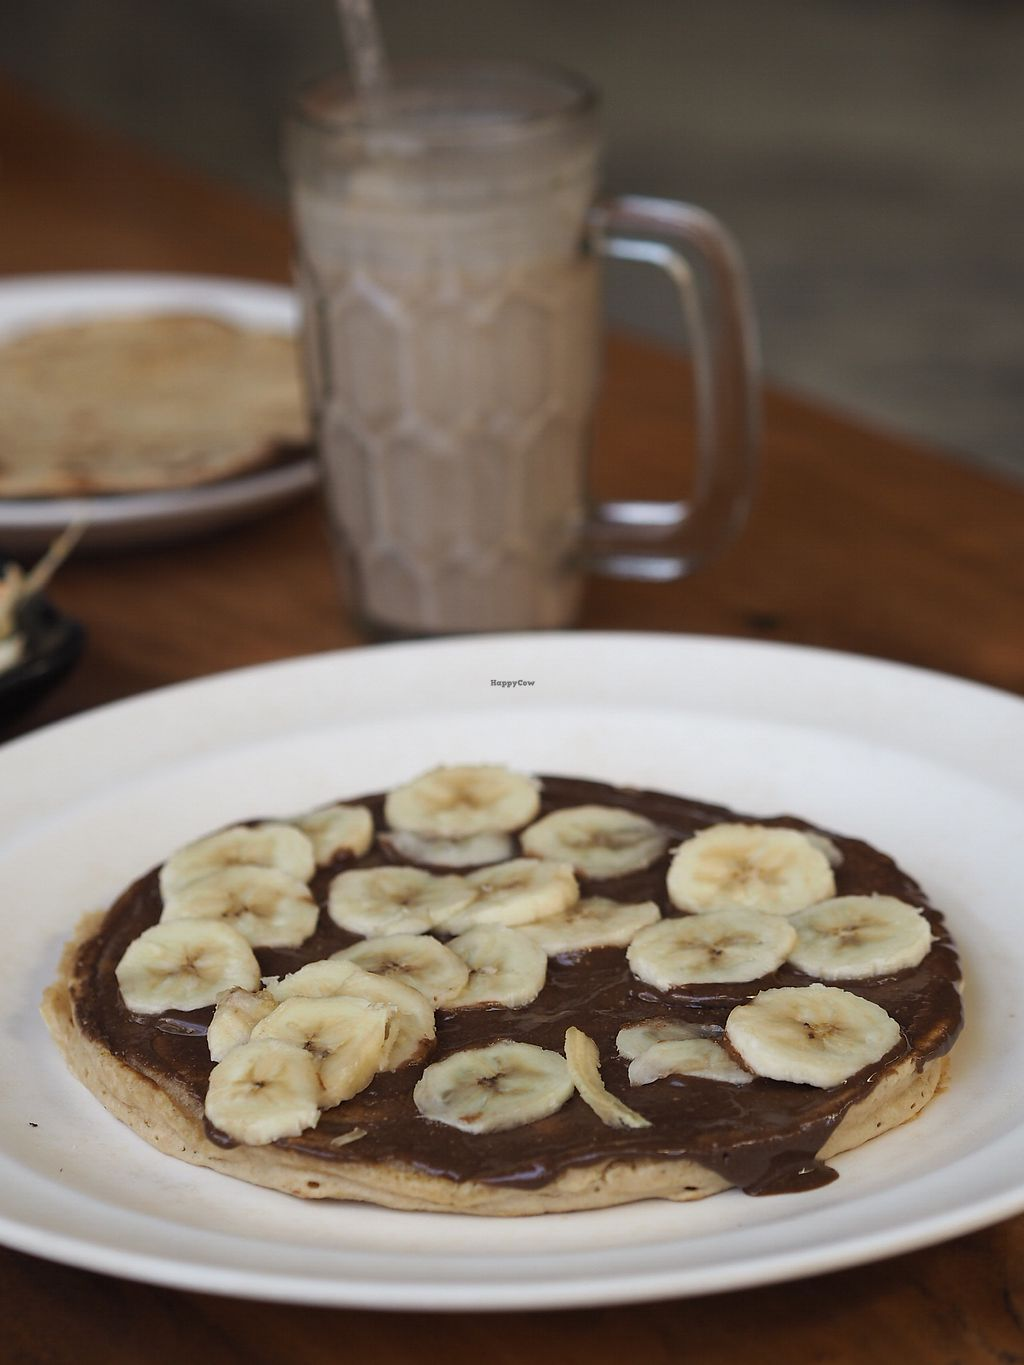 """Photo of Millets of Mewar  by <a href=""""/members/profile/KzellTan"""">KzellTan</a> <br/>Vegan banana-nutella pancakes  <br/> October 19, 2017  - <a href='/contact/abuse/image/30697/316516'>Report</a>"""